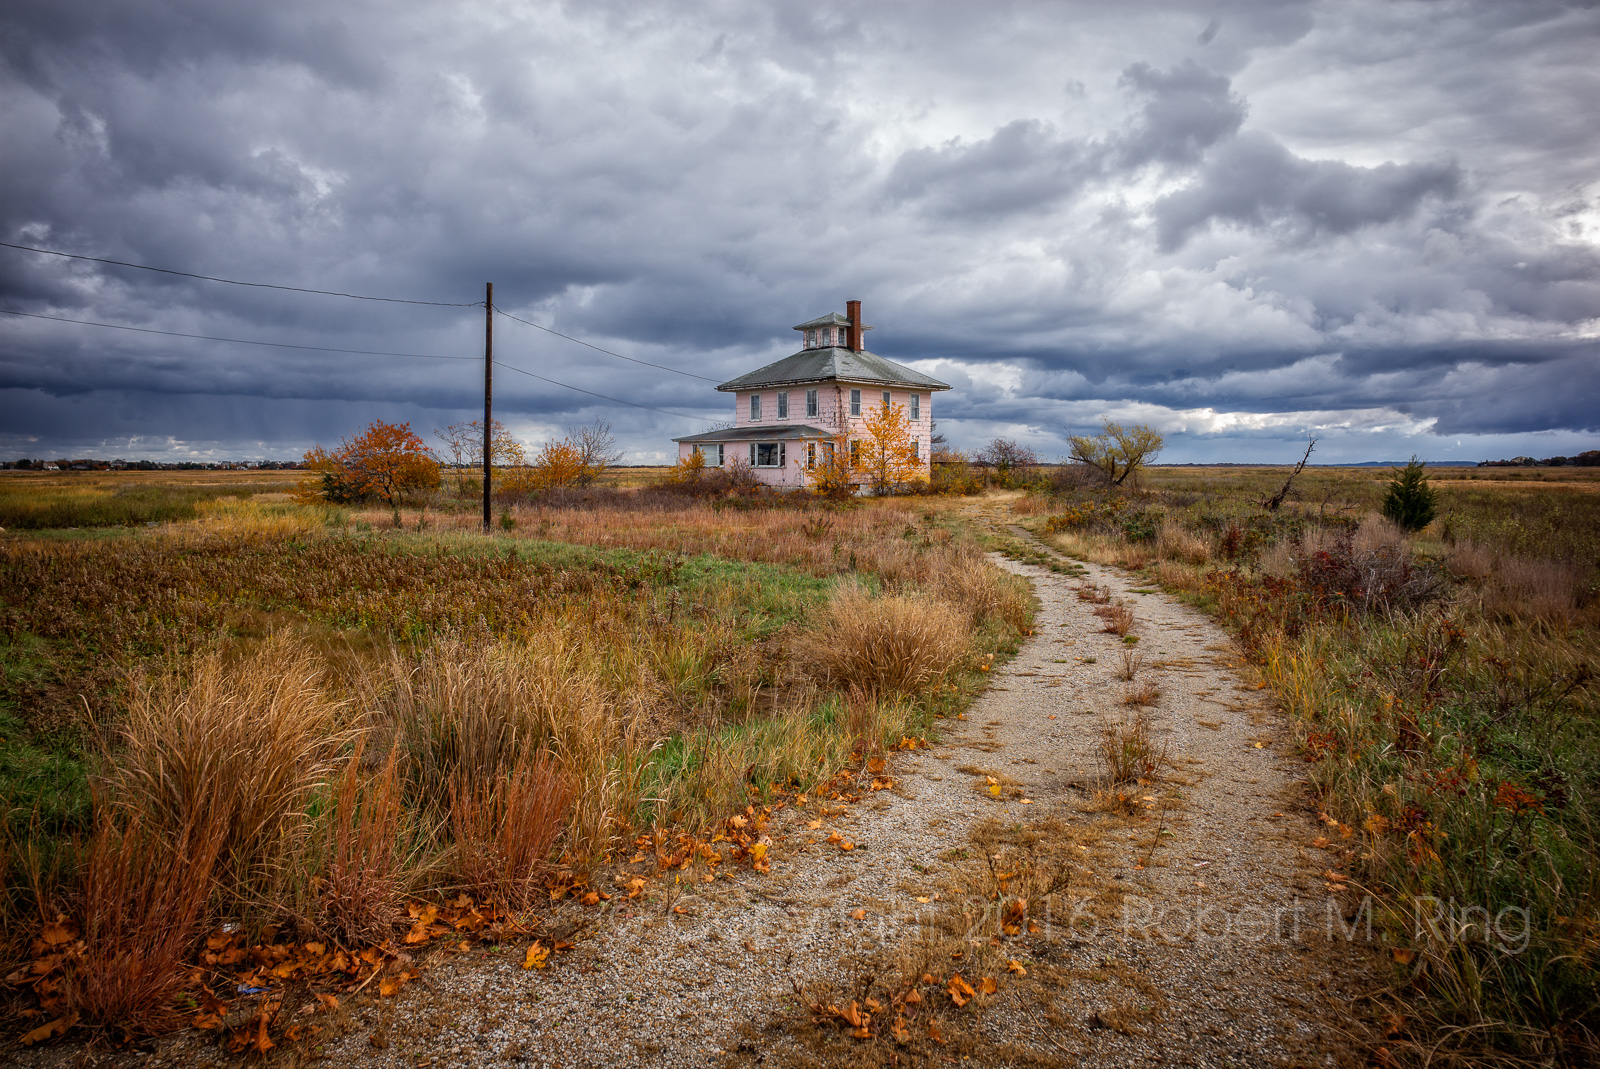 Pink House, New England, Massachusetts, history, PRNWR, Parker River National Wildlife Refuge, clouds, storms, photo